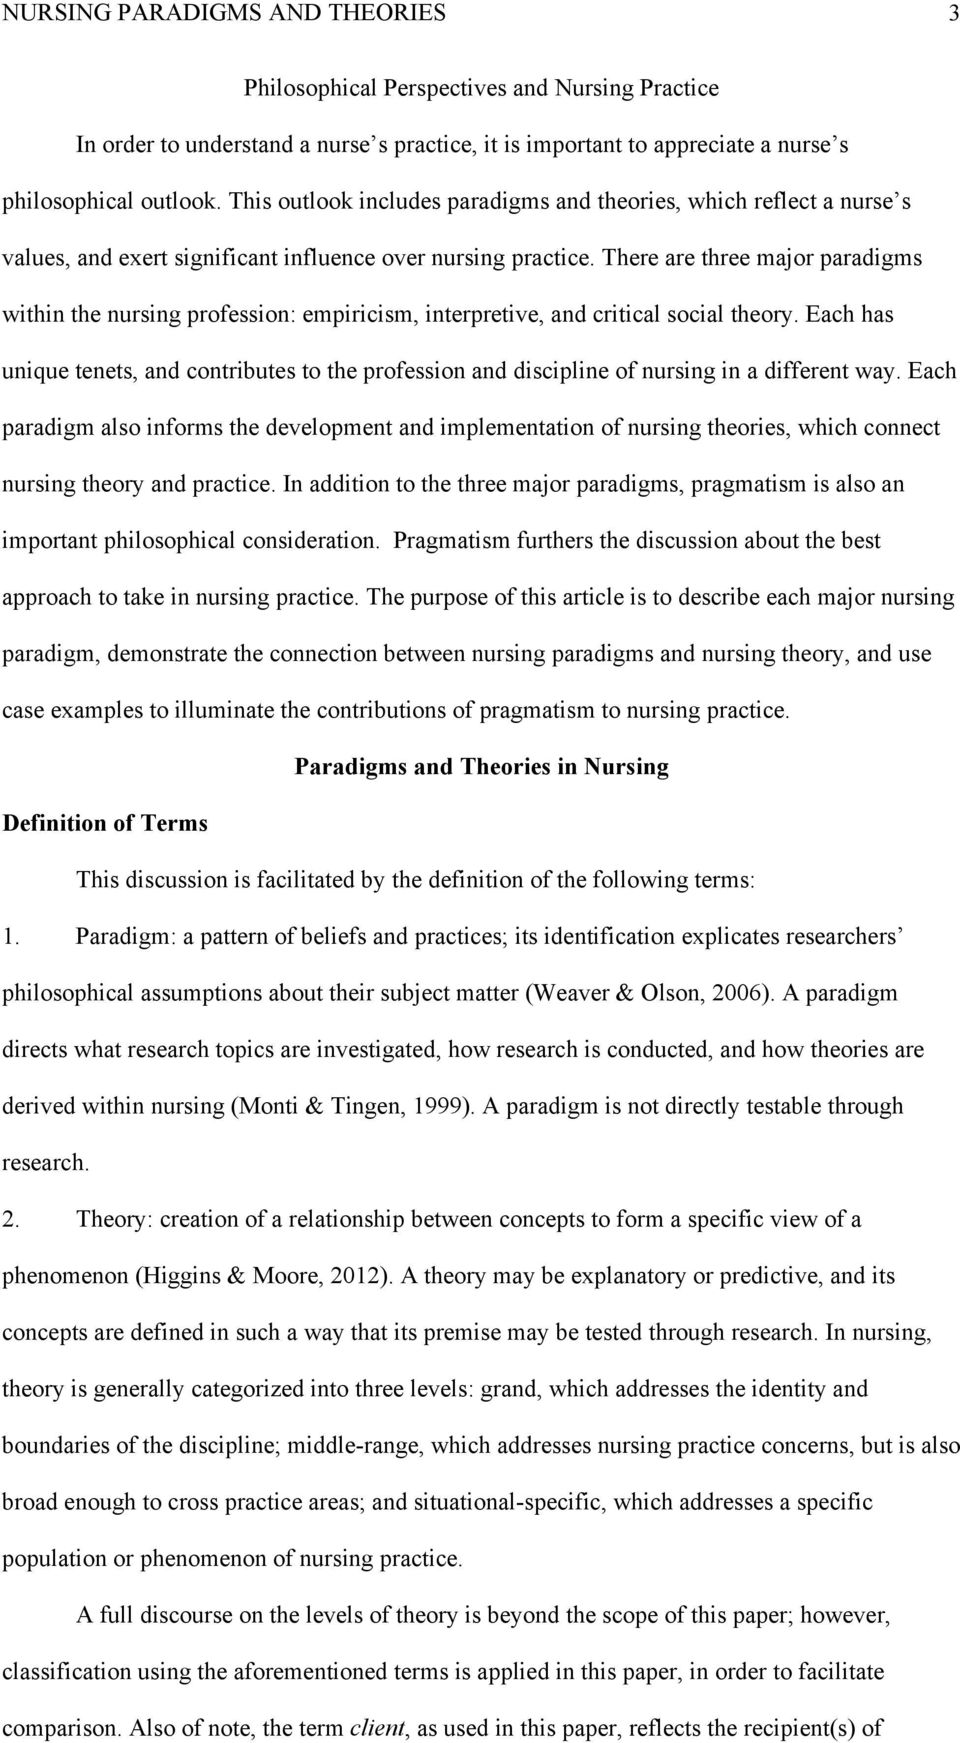 running head nursing paradigms and theories 1 pdf there are three major paradigms in the nursing profession empiricism interpretive and critical